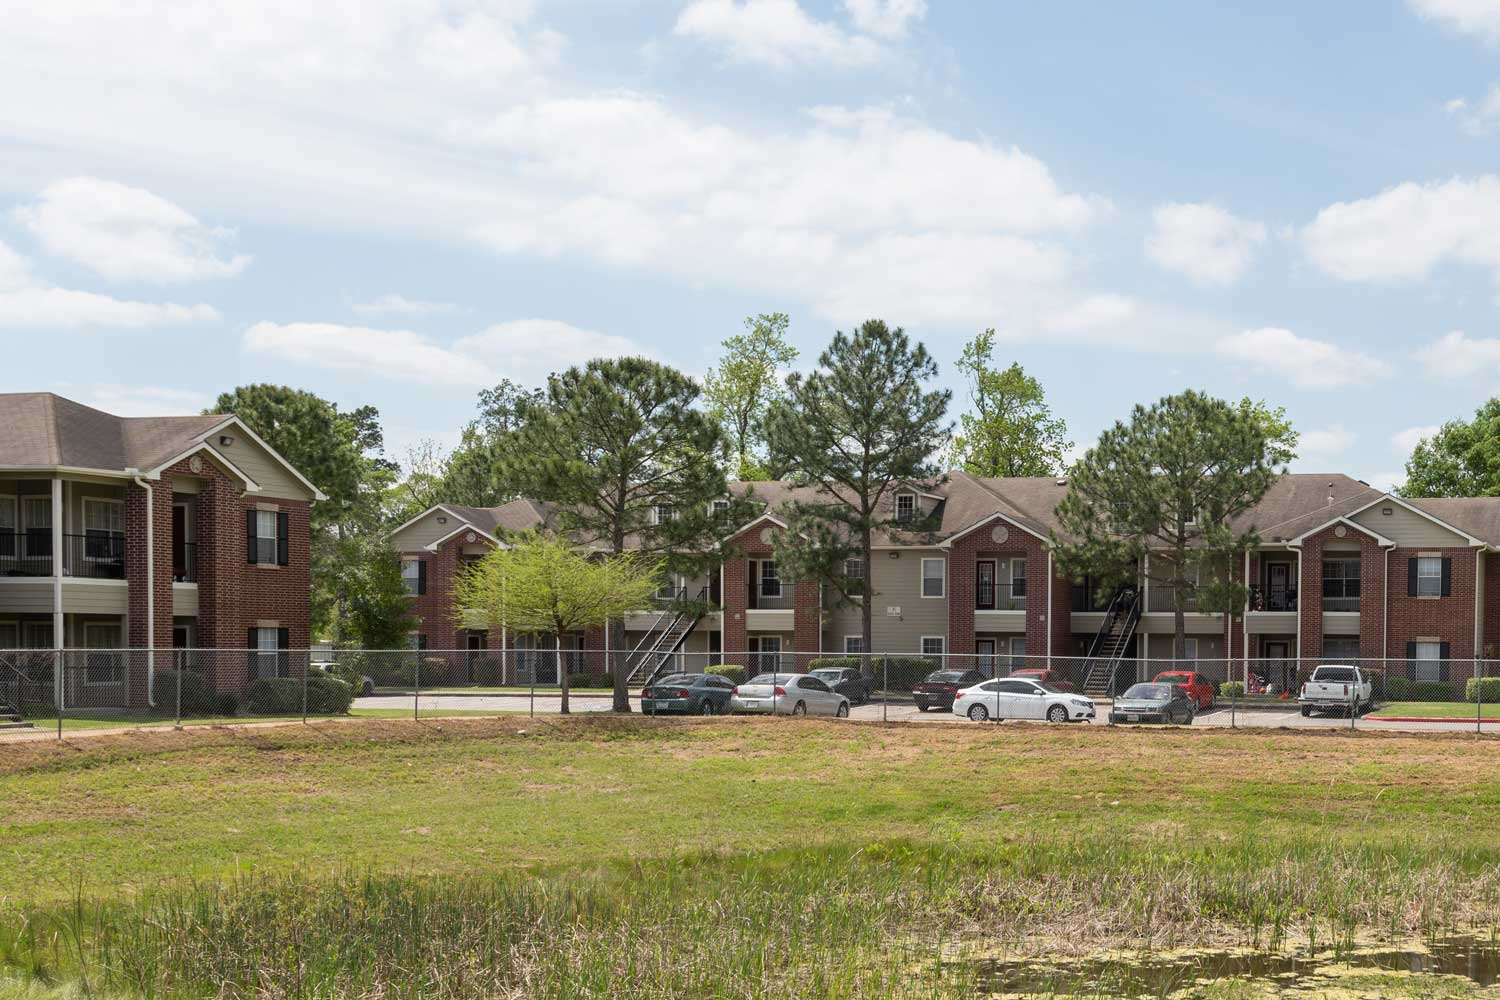 Image of Greens Pines Apartments